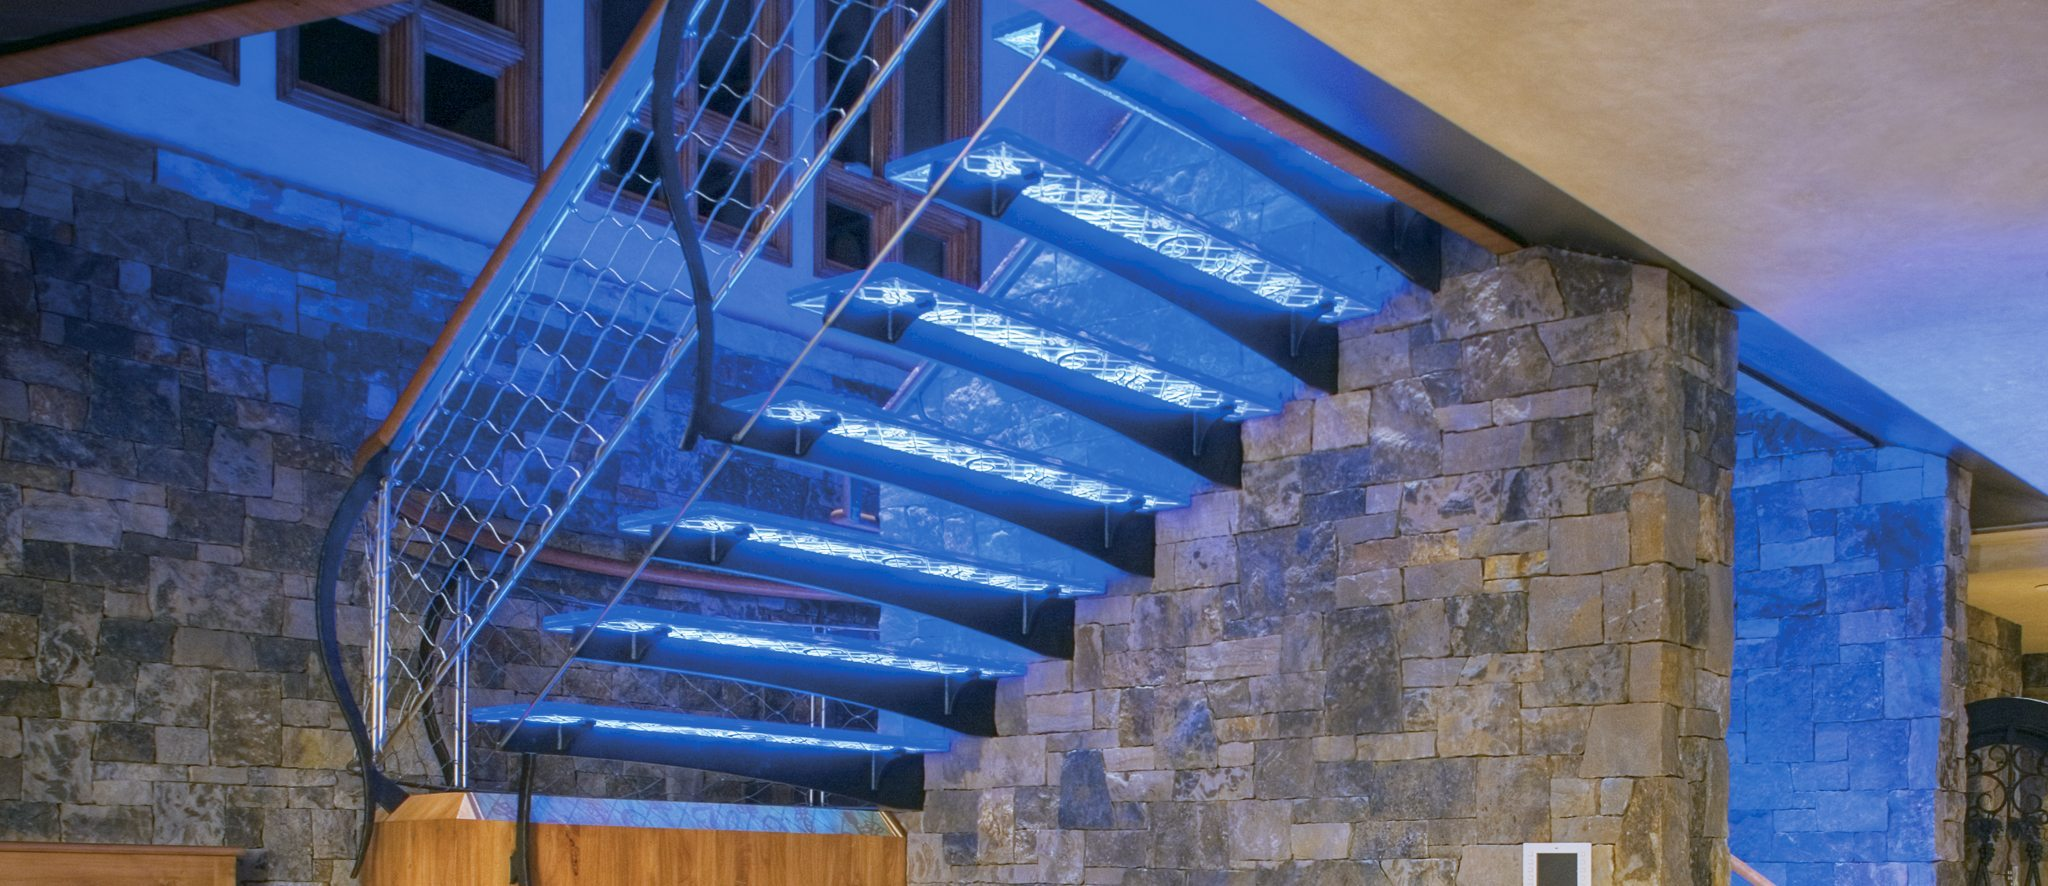 Chapin Residence Thick Glass Stairs